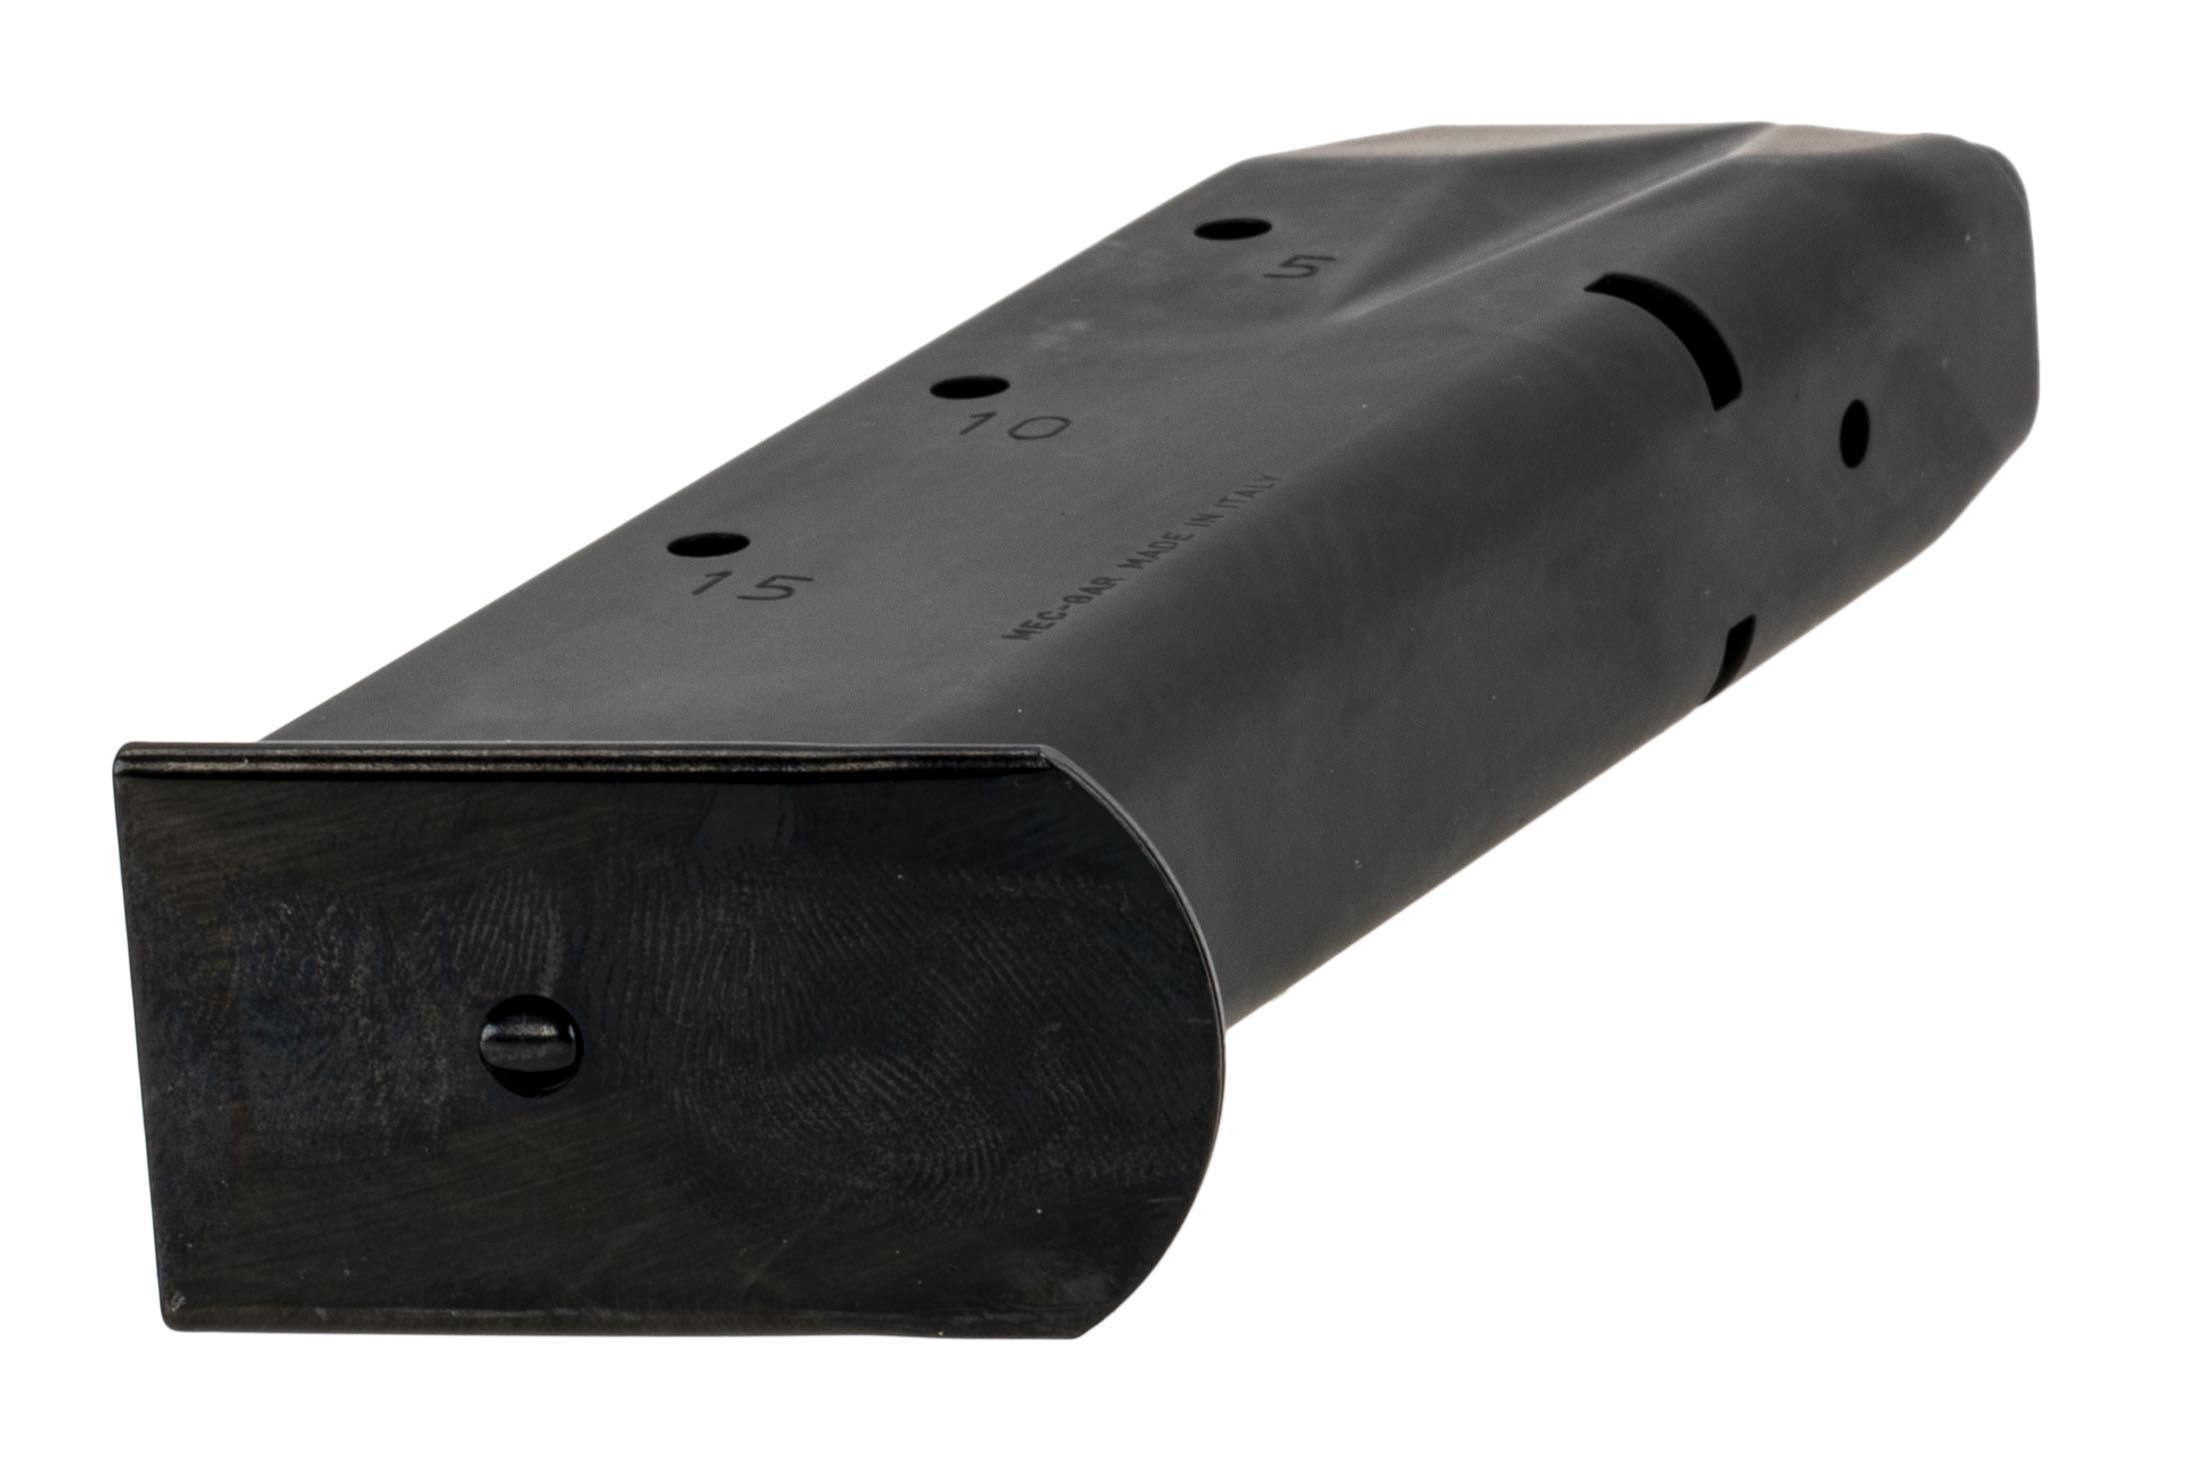 SIG Sauer P226 magazine holds 15-rounds of 9mm Auto ammo with witness holes and easy disassembly.